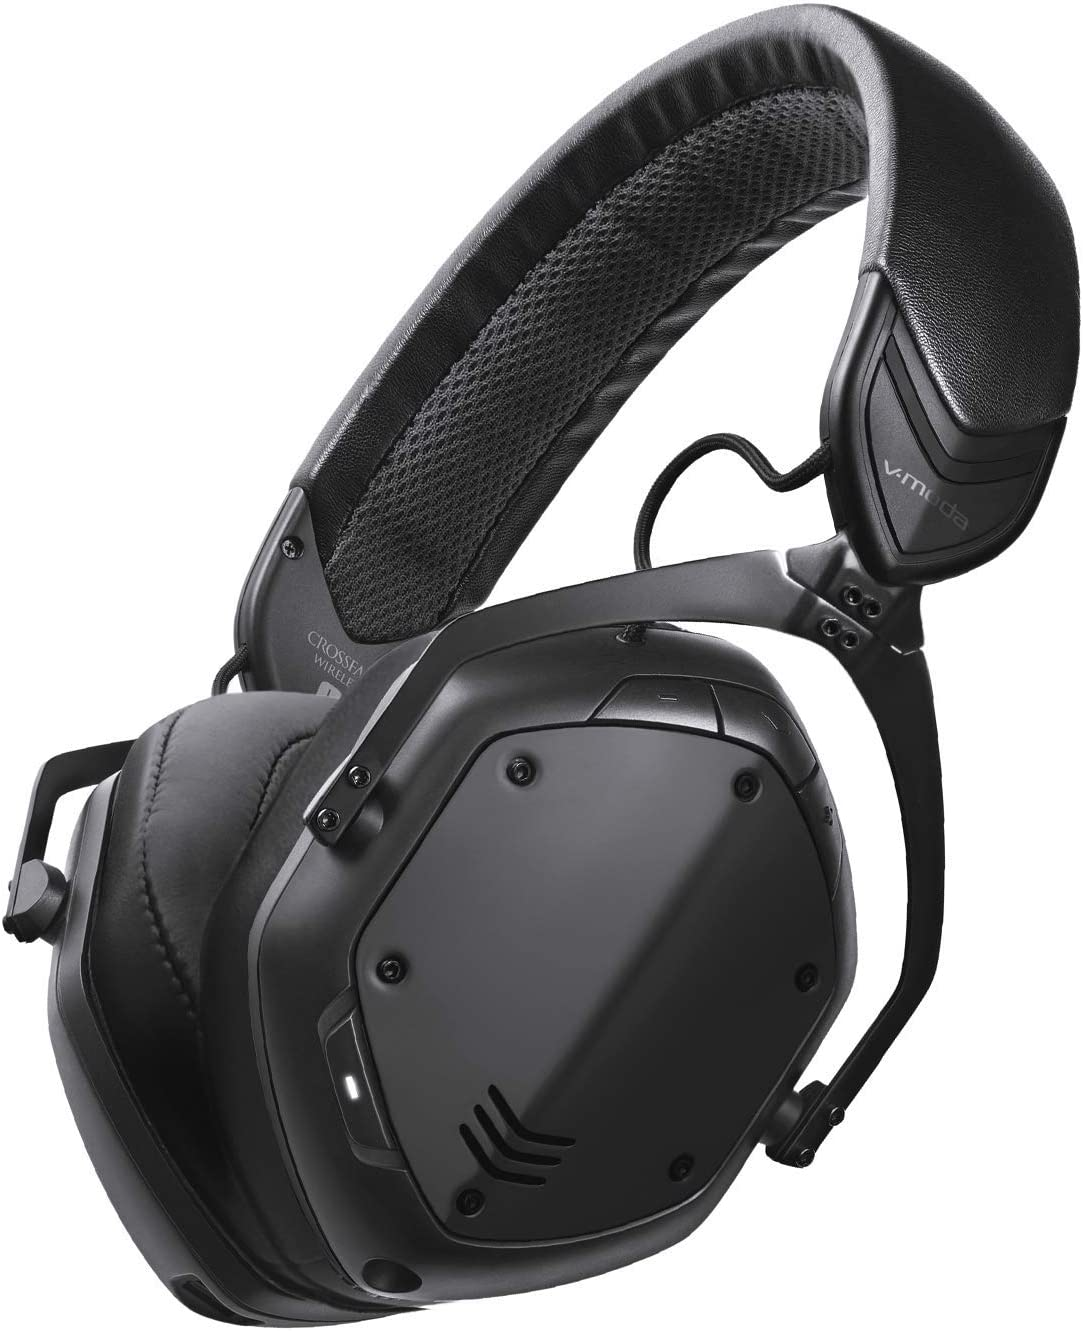 V-MODA Crossfade 2 Wireless Codex Edition with Qualcomm aptX and AAC